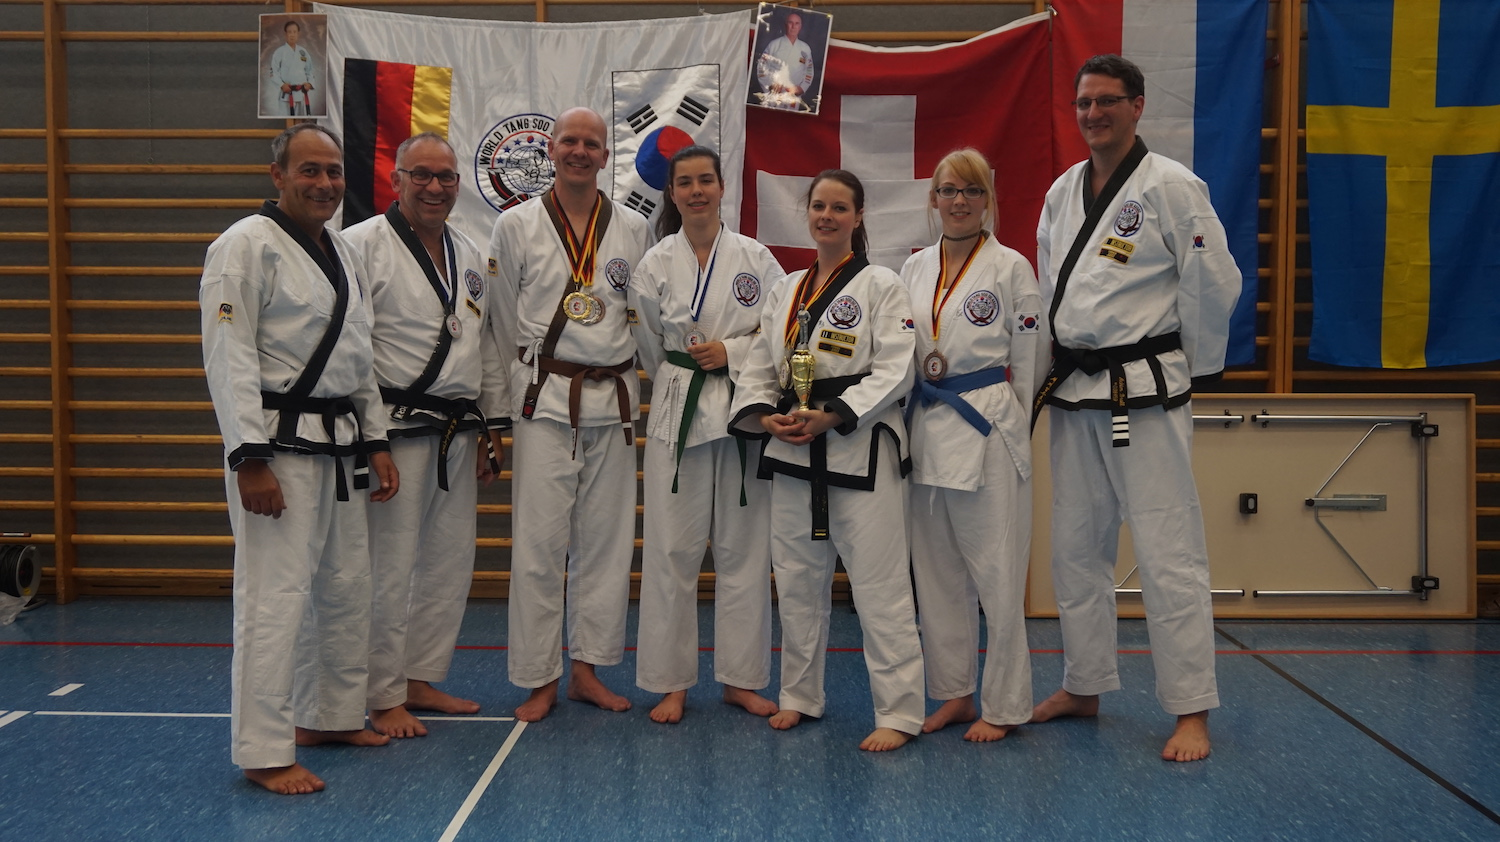 Internationale deutsche Meisterschaft im Tang Soo Do in Esting/Olching